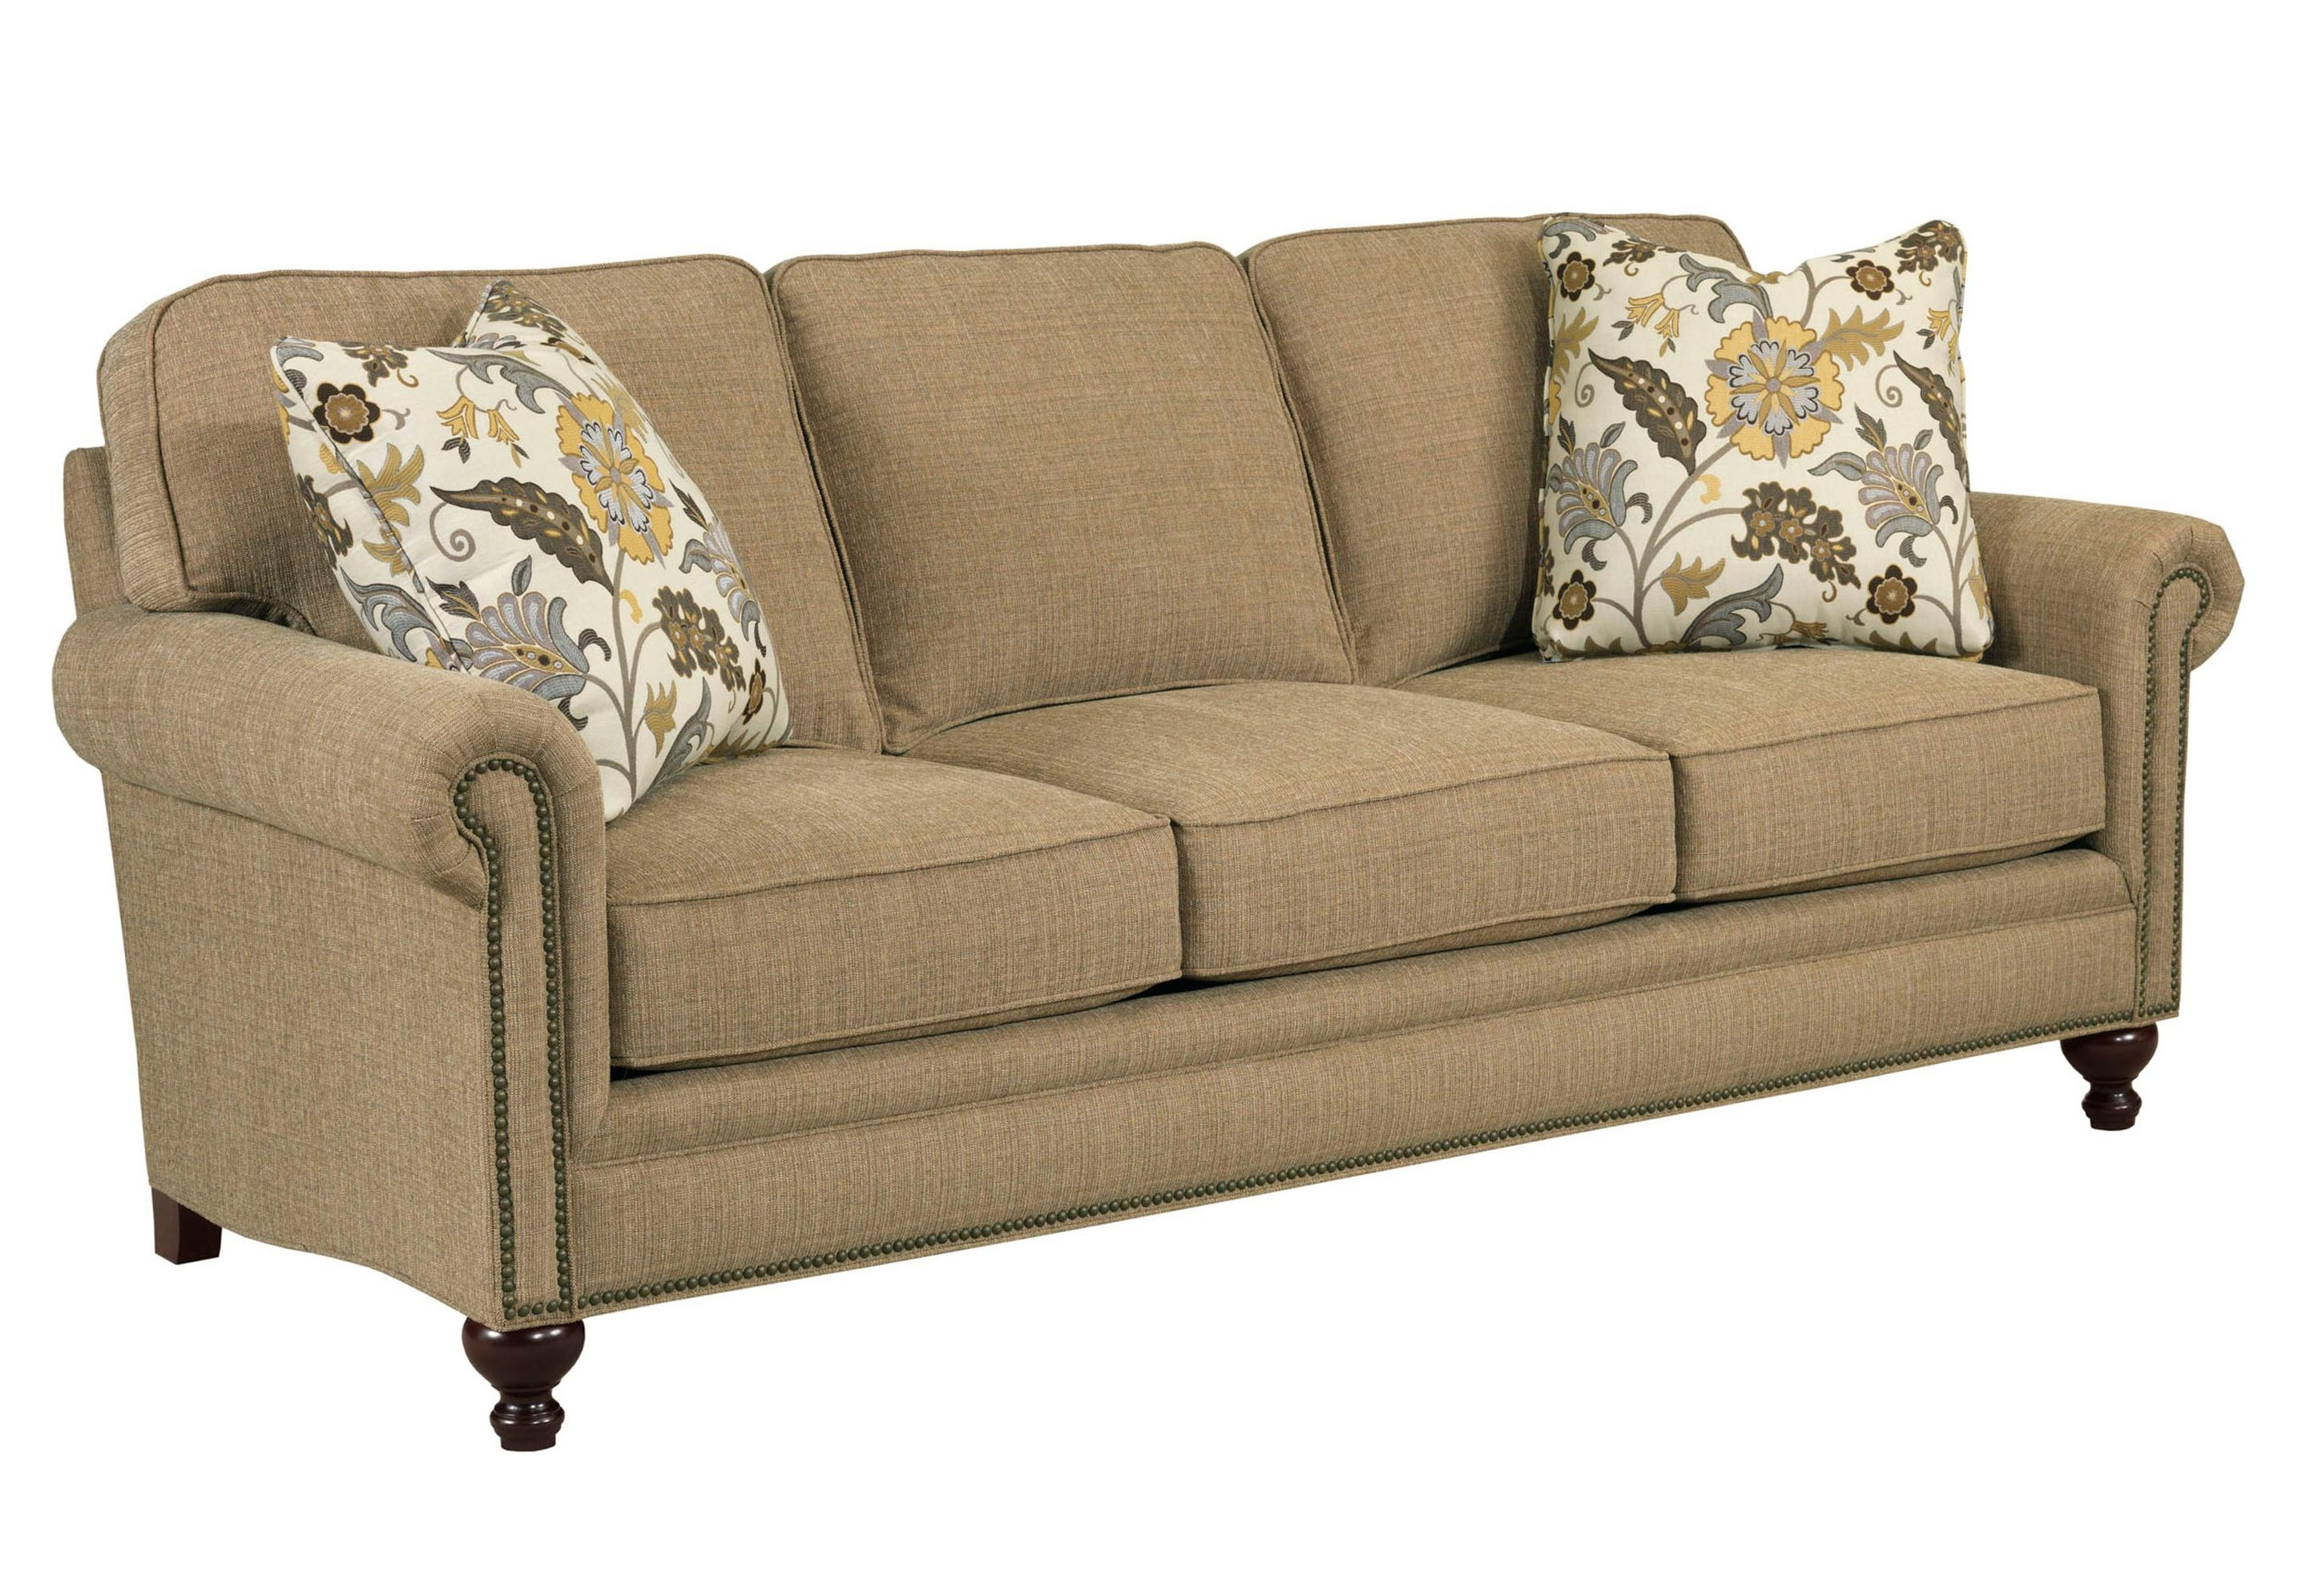 Broyhill Sofa Fabric Samples Sofas Recliners | Deseosol Throughout Broyhill Reclining Sofas (View 5 of 20)